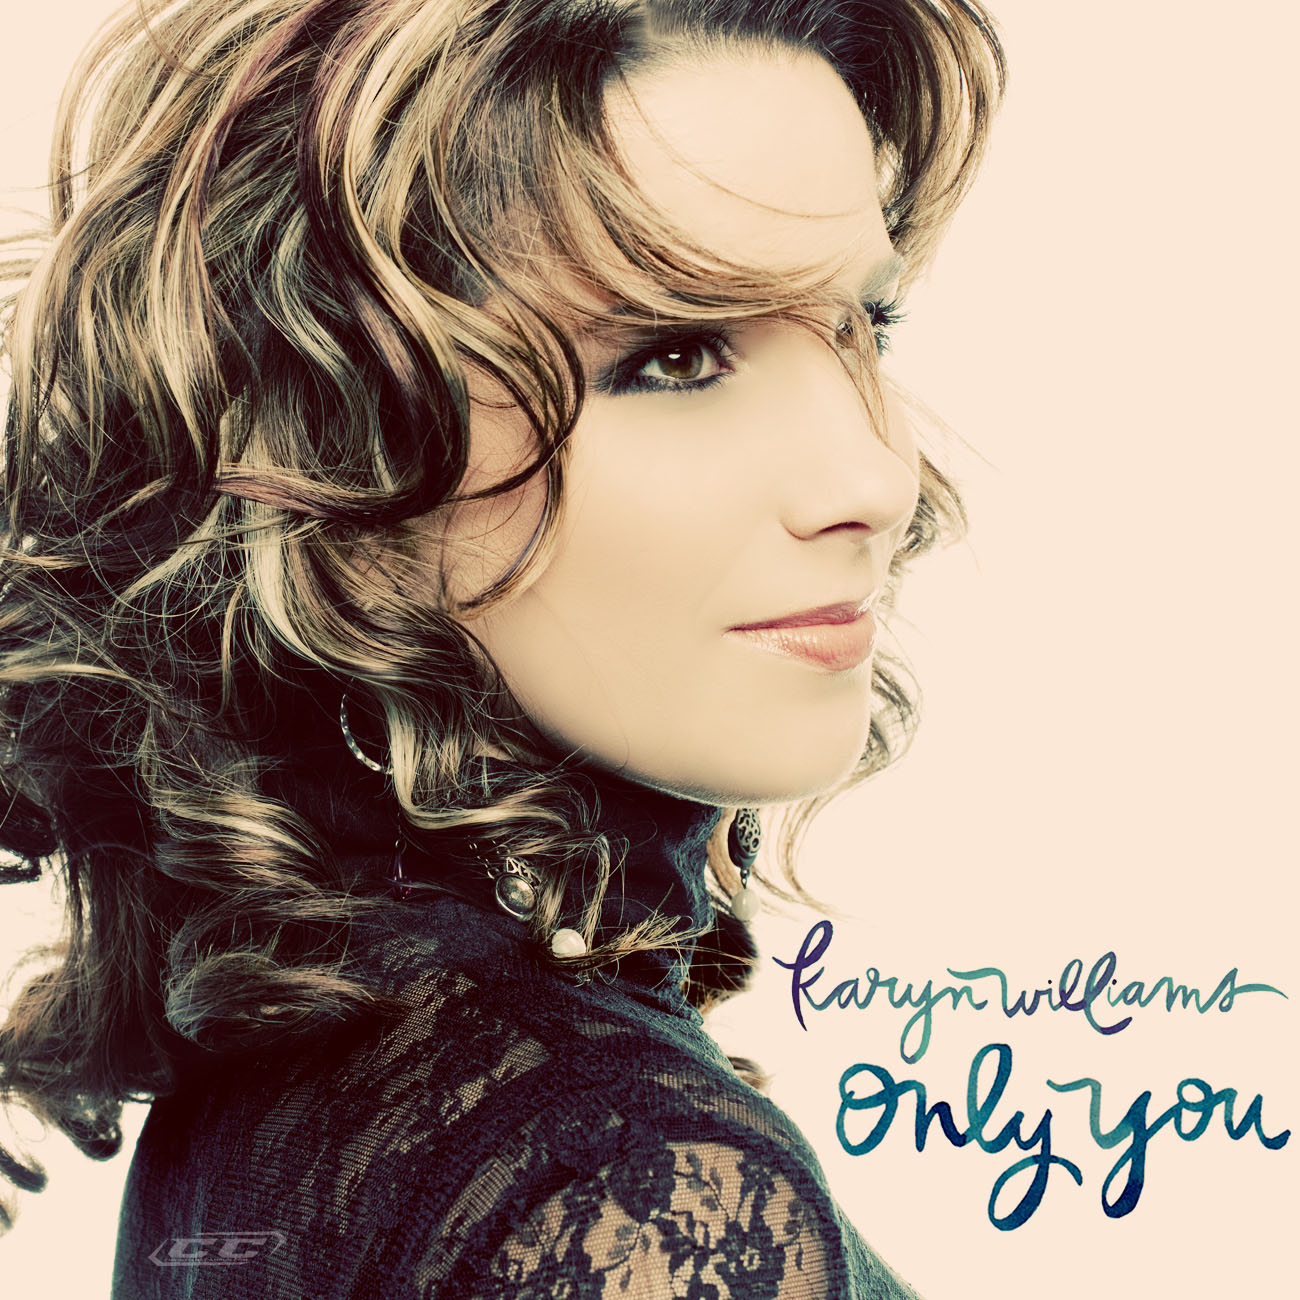 Karyn Williams - Only You 2013 English Christian Album Download